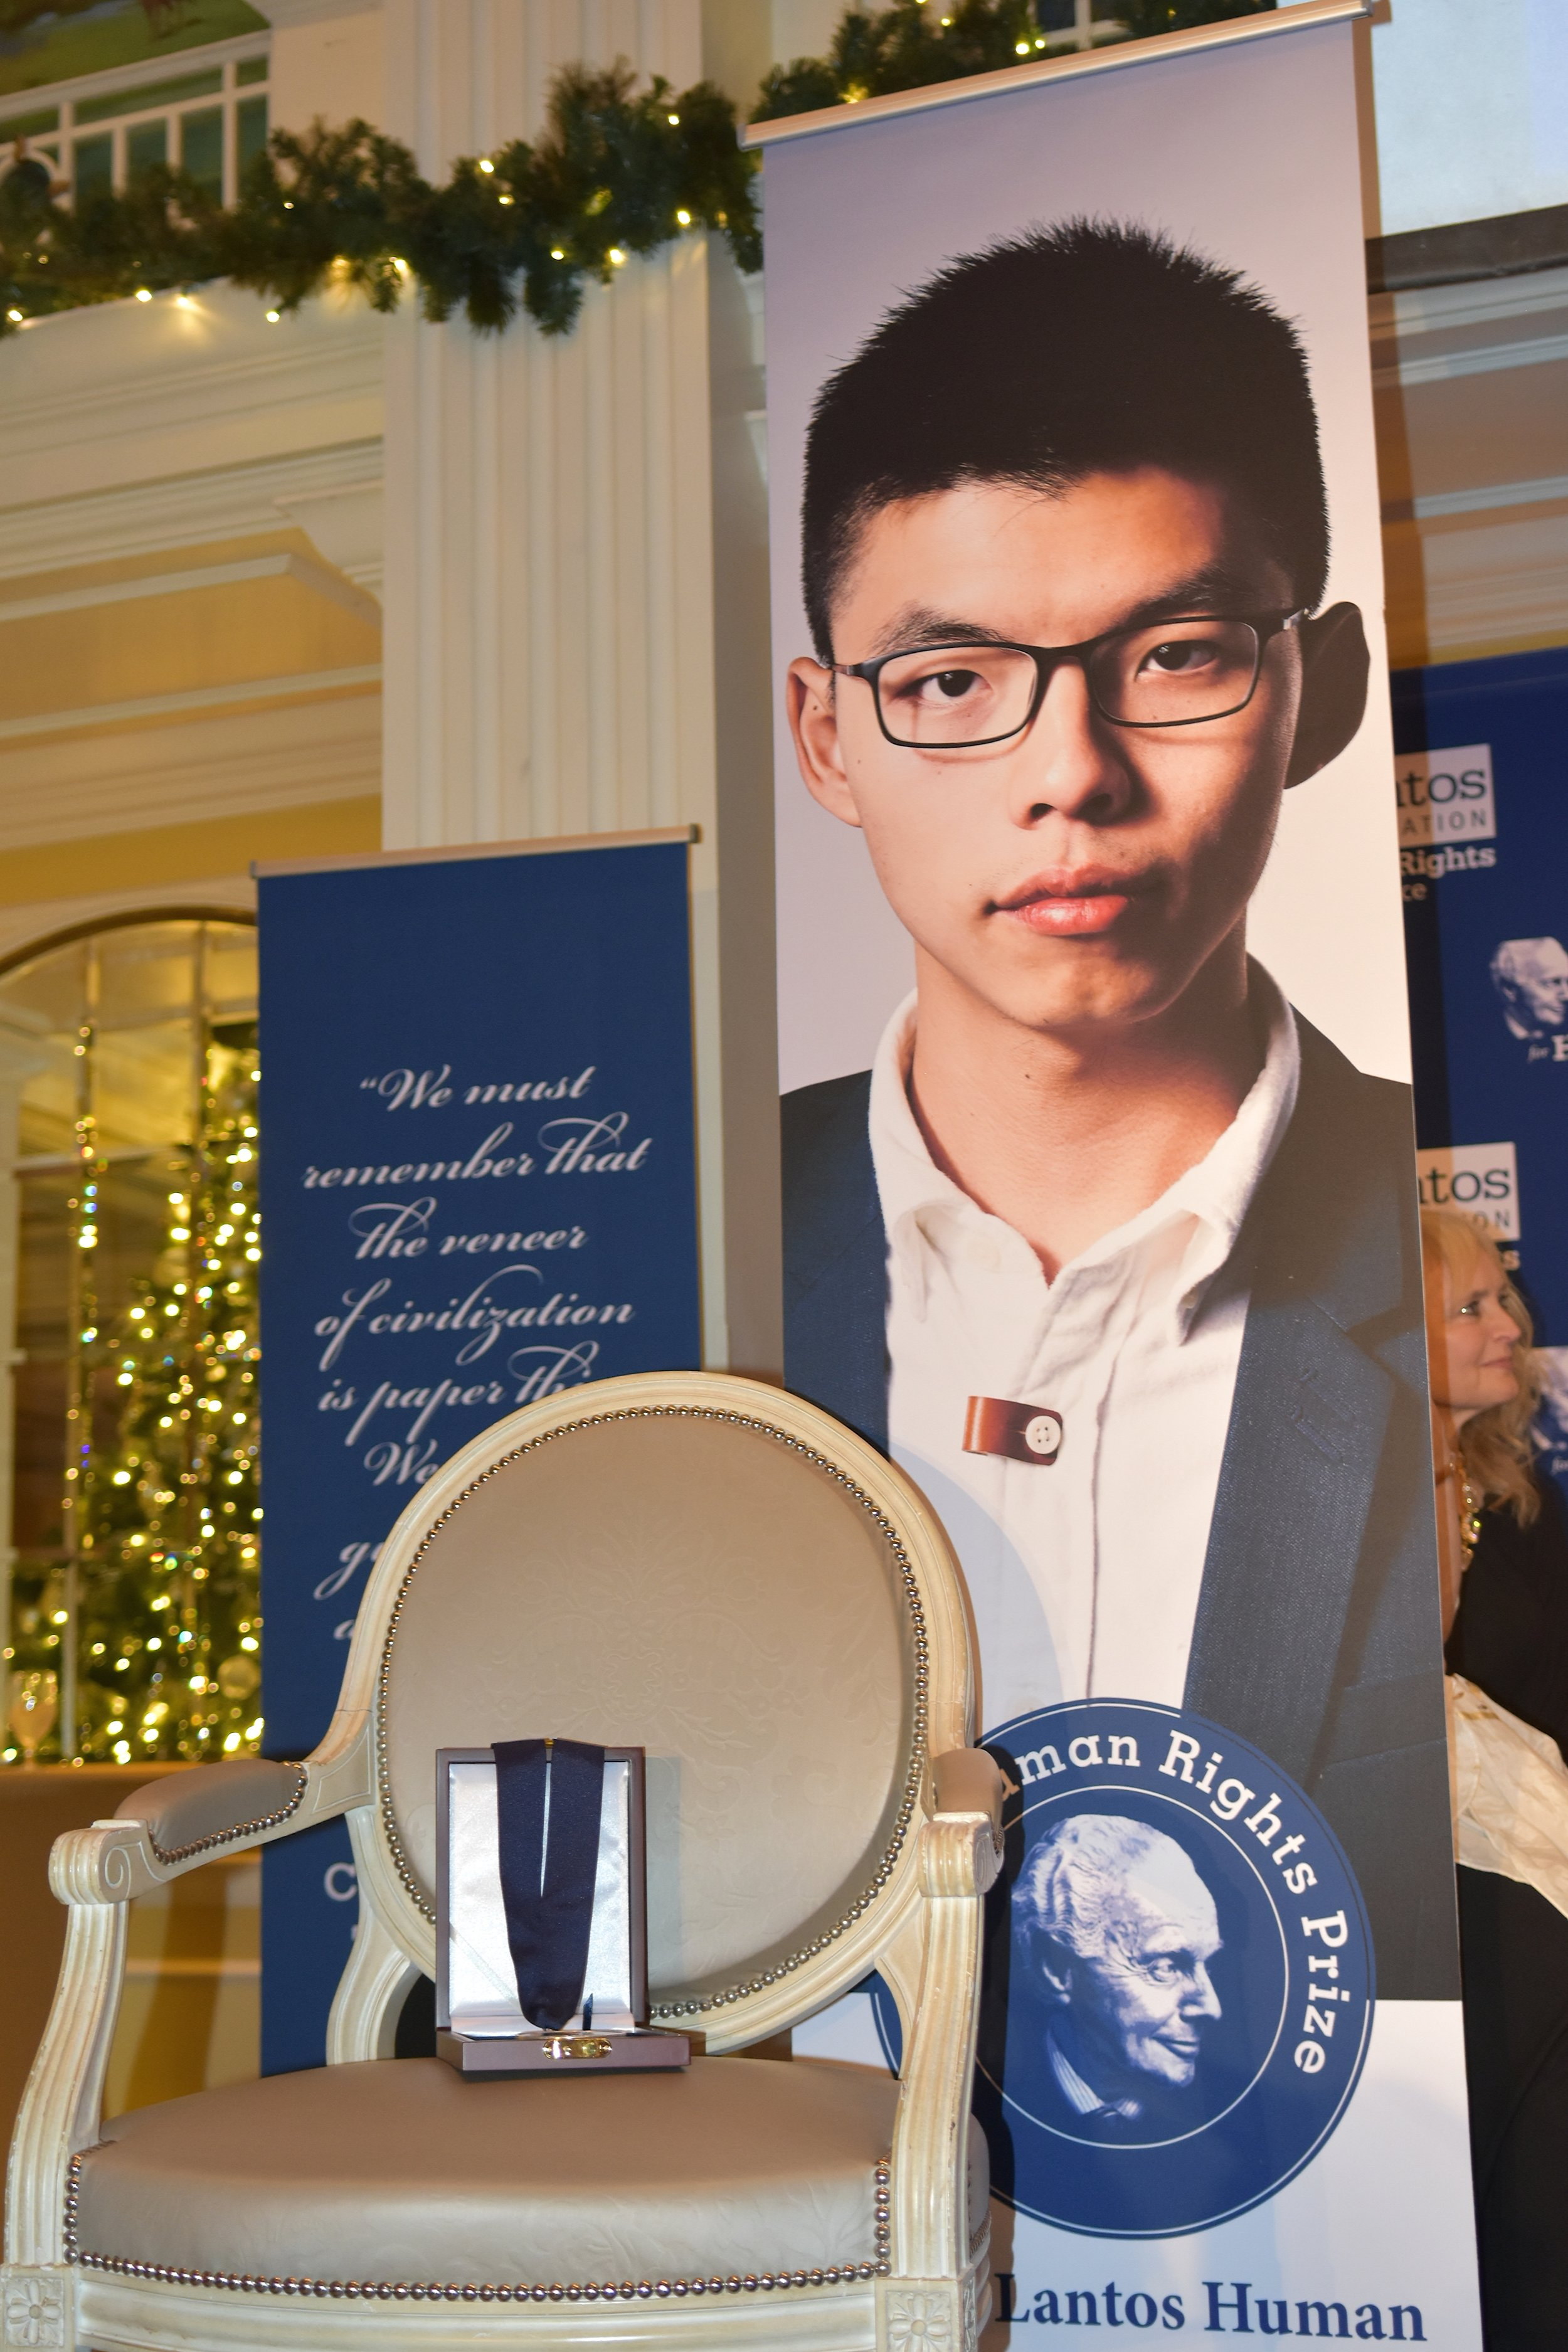 Joshua Wong's chair sits empty at the 2018 Lantos Human Rights Prize Ceremony.